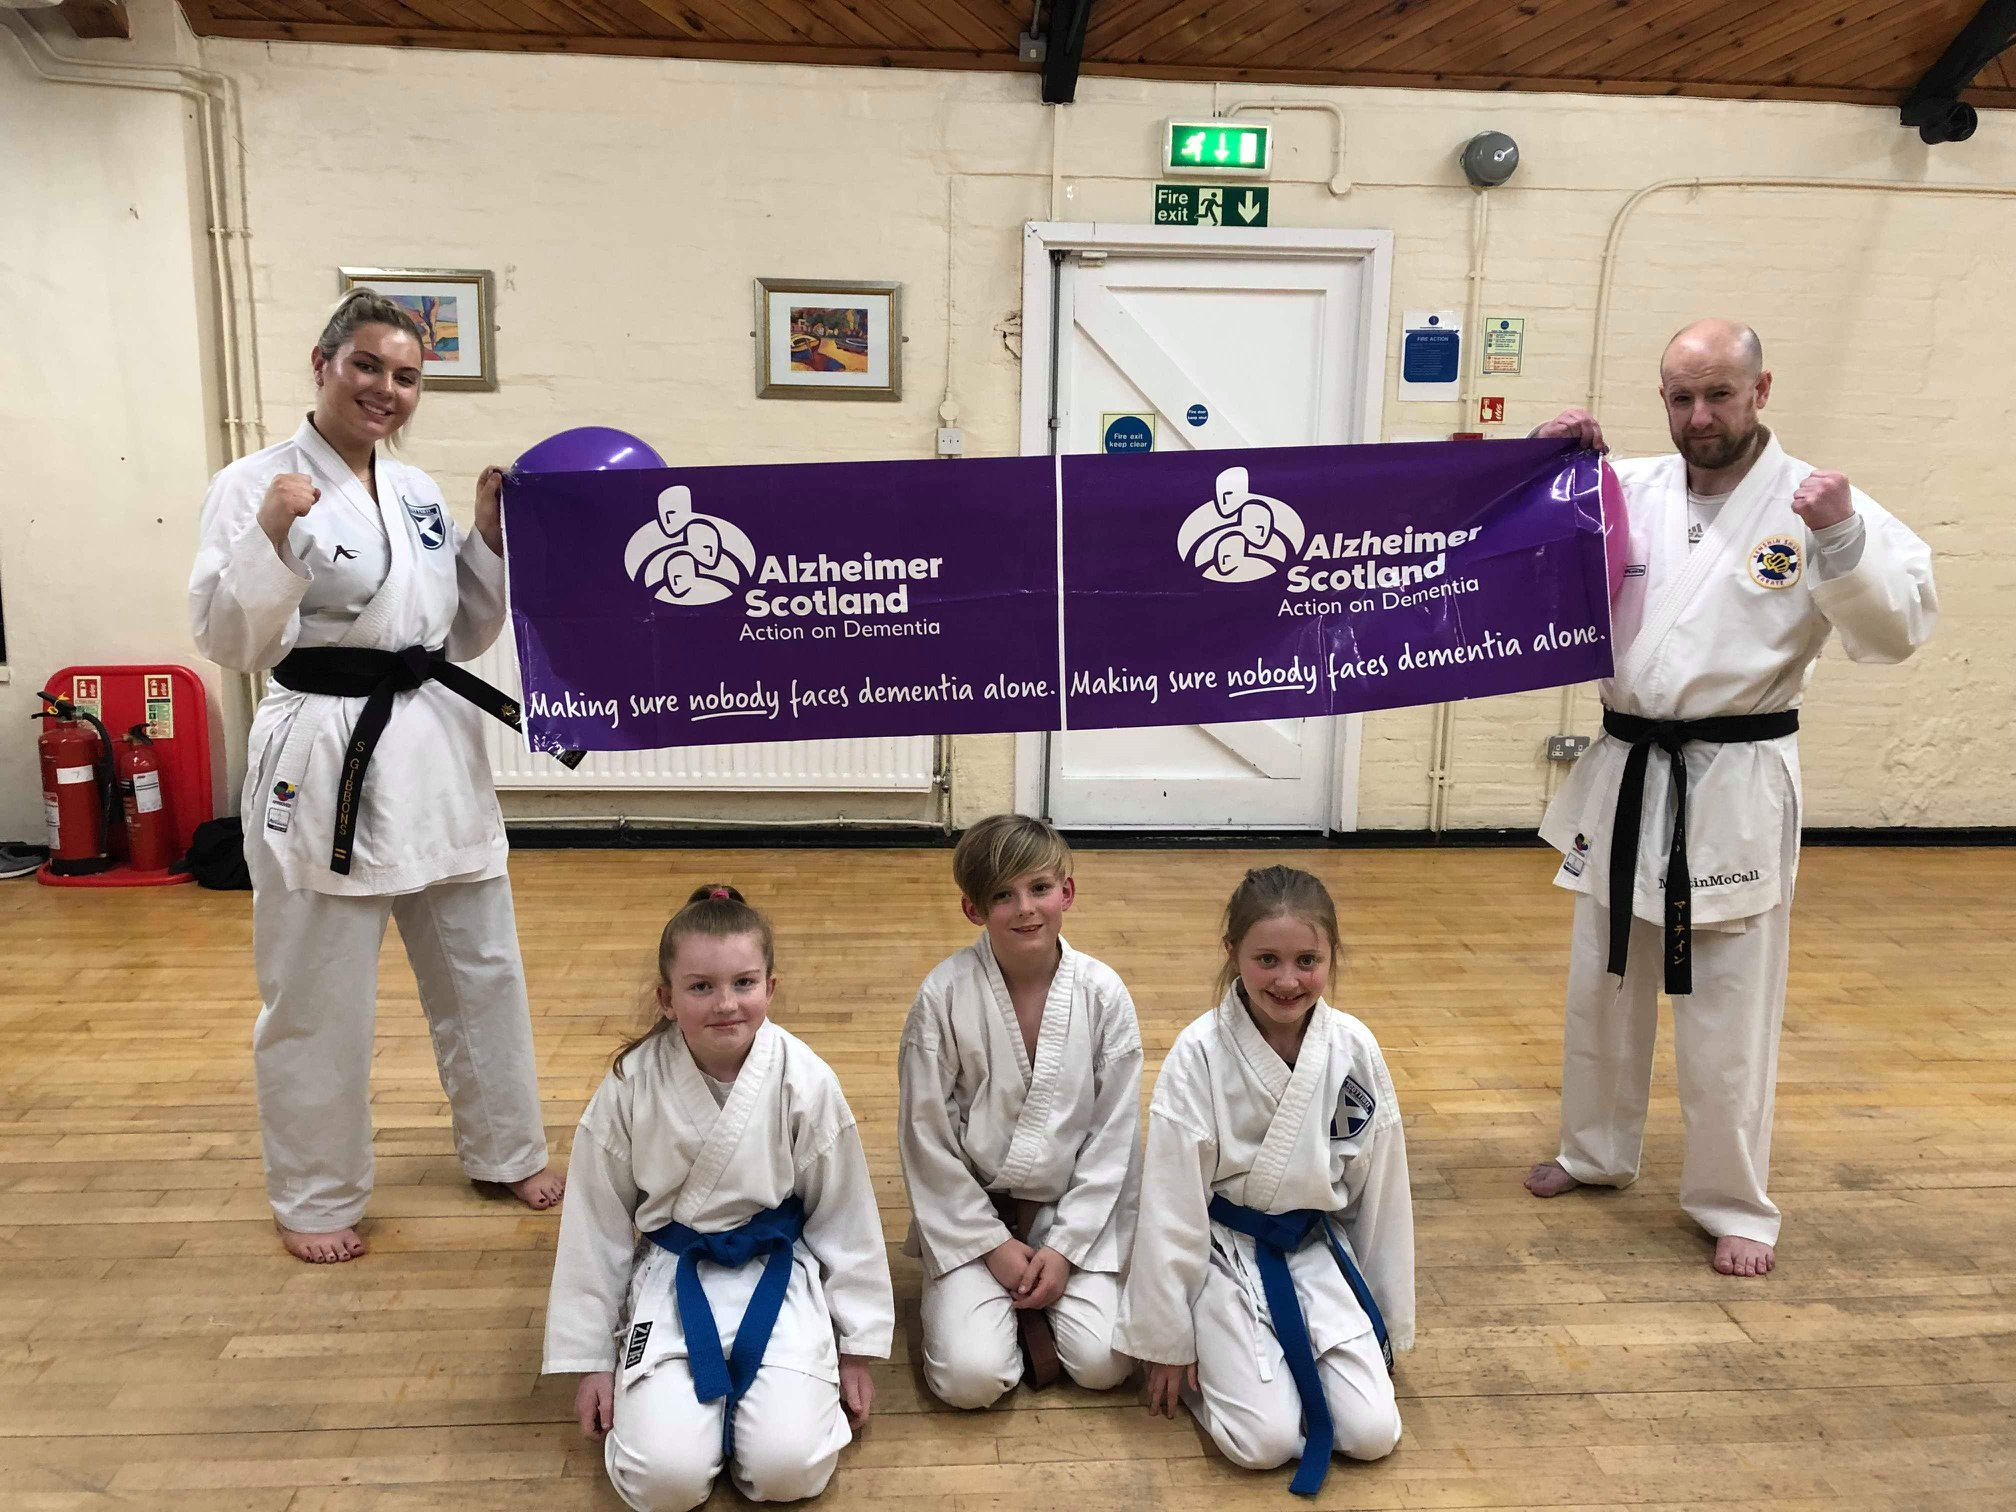 Big-hearted karate kids raise money for Alzheimer's charity